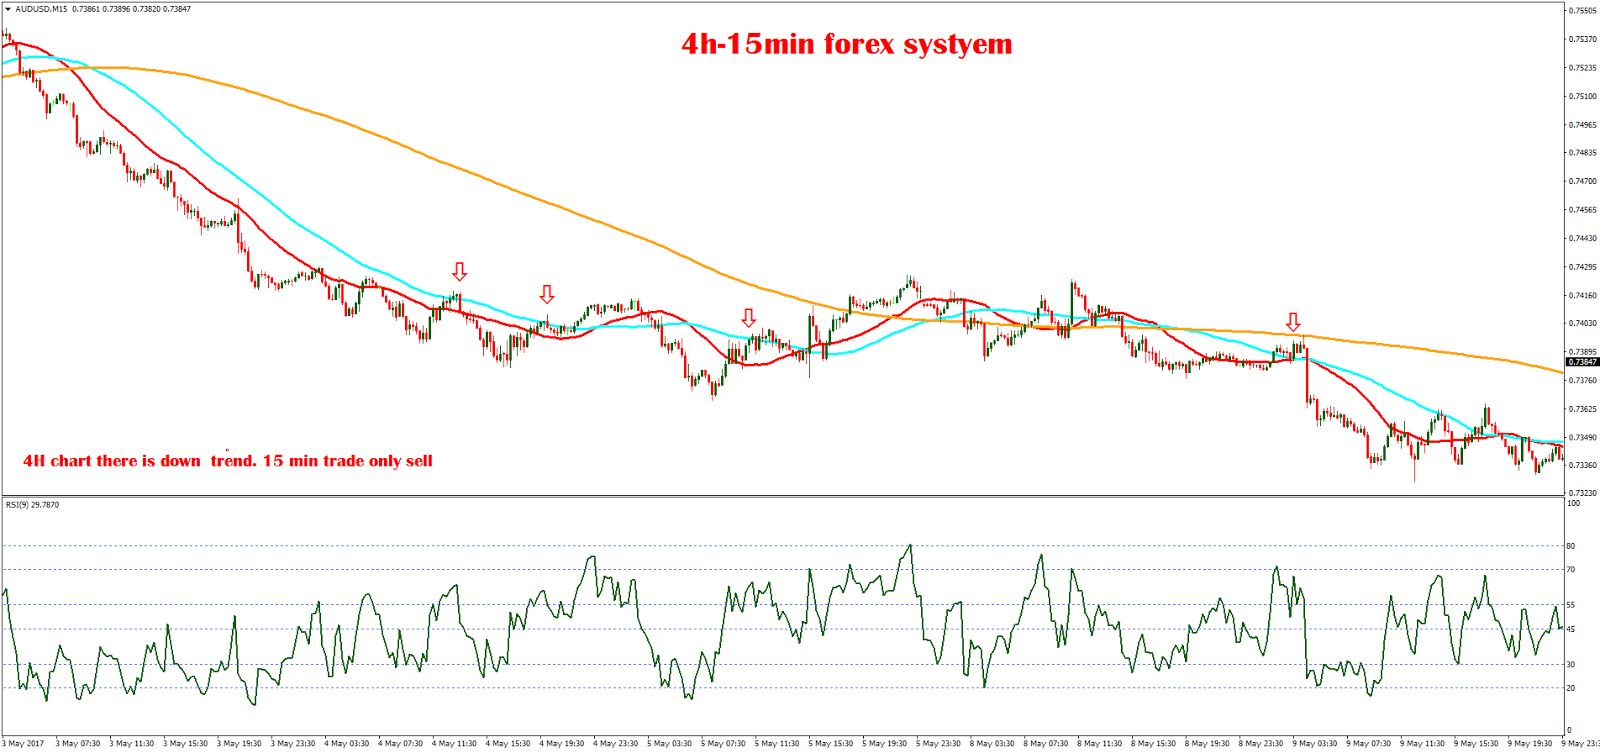 15 min chart trading system